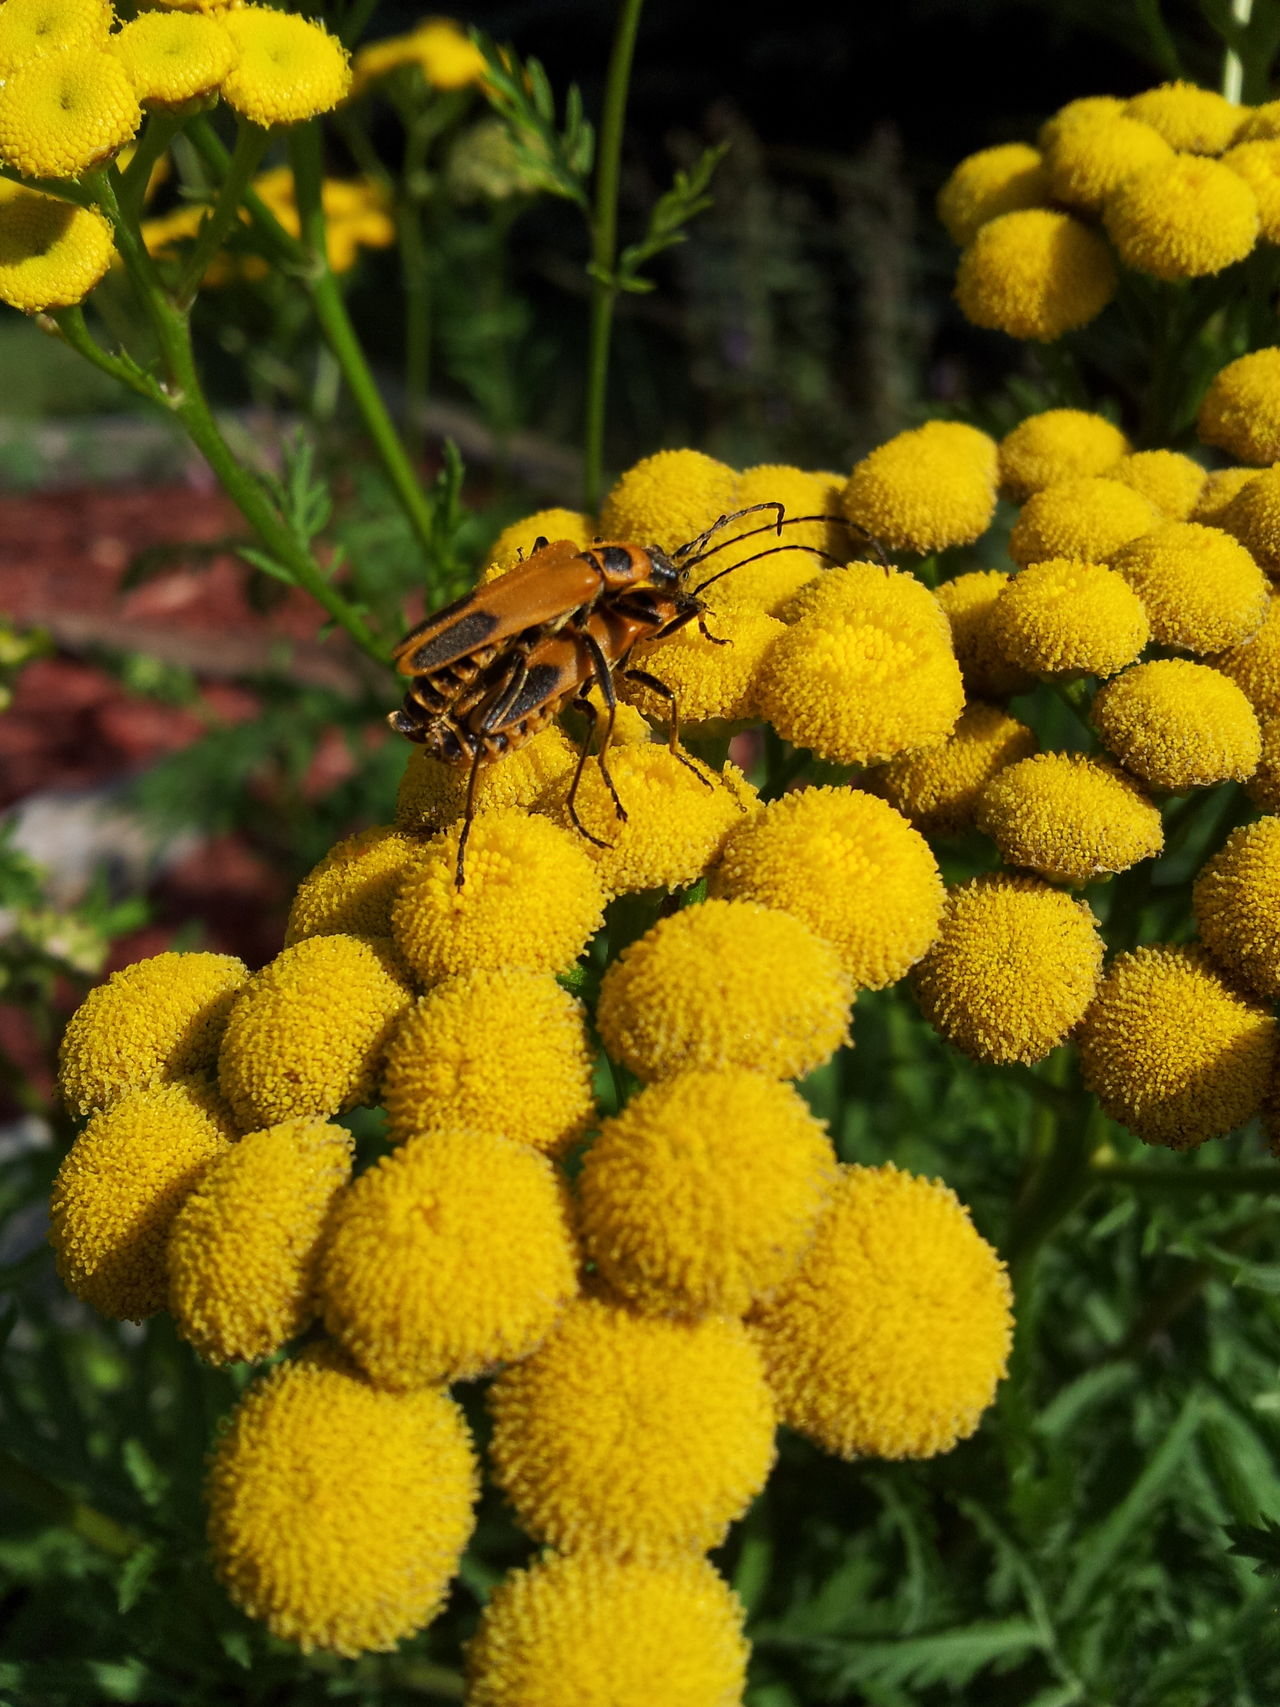 Yellow flower heads with two bugs Bugs Bugs Life Love Bugs Bugs! Taking Photos Taking Pictures Nature Flower Head Beautiful Nature Beauty In Nature Nature_collection Flowers_collection Flowers,Plants & Garden Flowers, Nature And Beauty Flower Photography Close Up Closeup Close-up Bug Bugslife Macro_flower Nature On Your Doorstep Nature Photography Yellow Flower Yellow